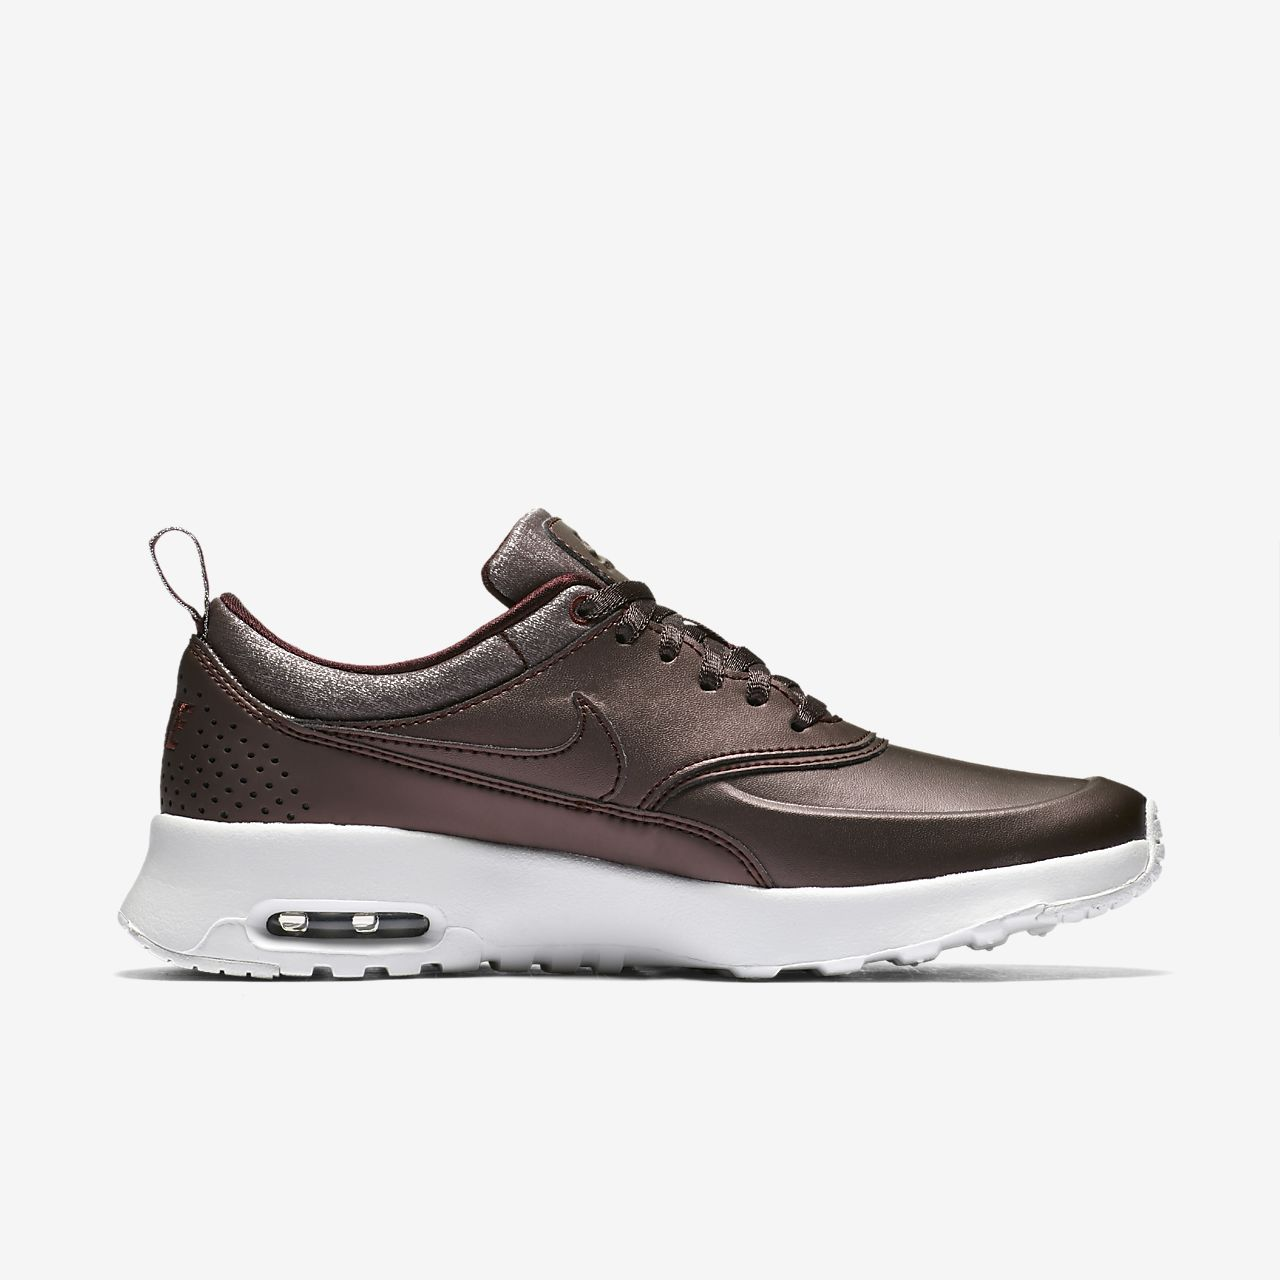 nike air max 1 ultra premium women's nz